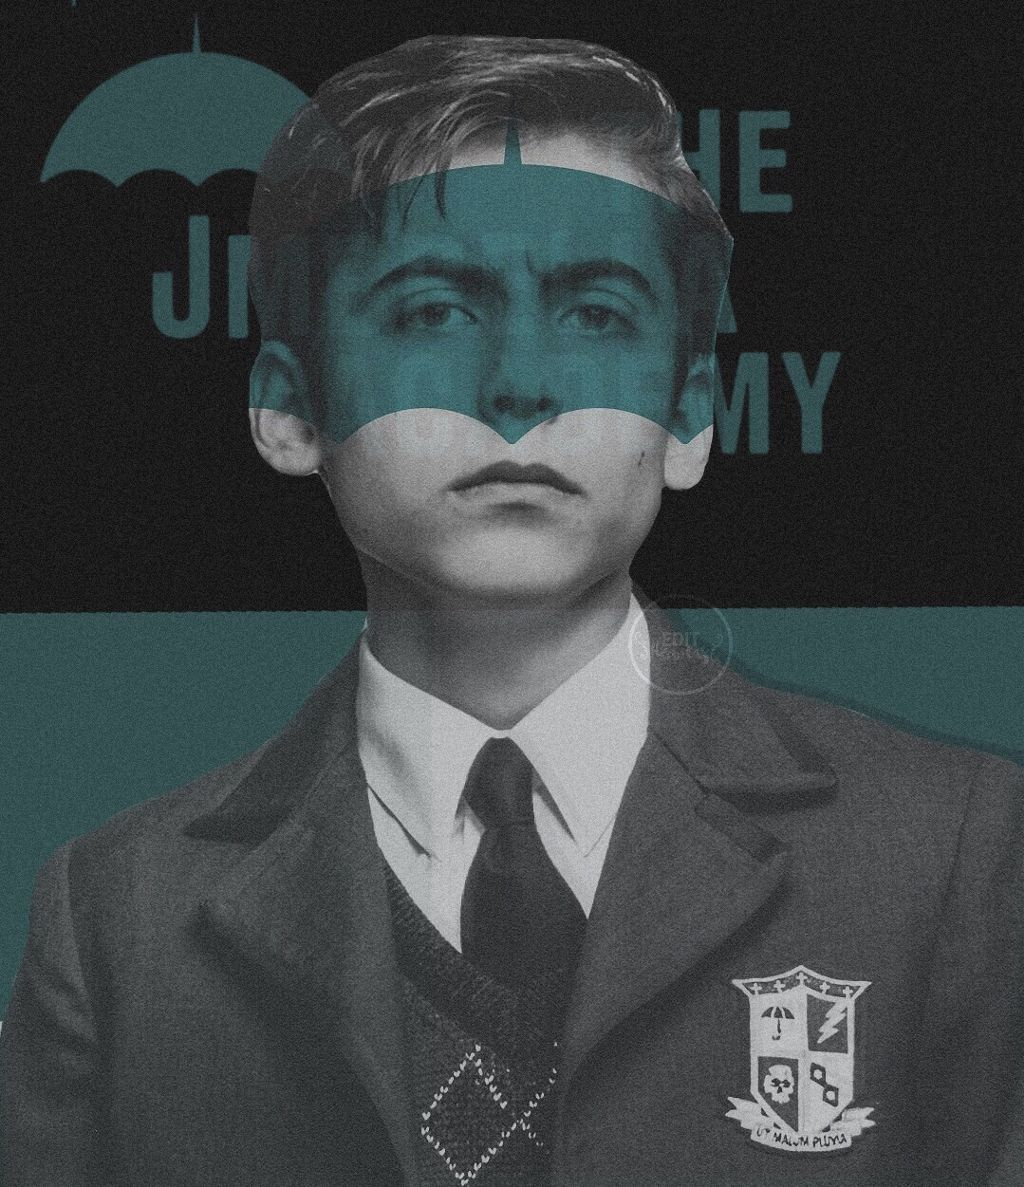 UMBRELLA ACADEMY IS AMAZING  I FINISHED WATCHING IT YESTERDAY AND JSNSNSNSNSNSSN     DED         #freetoedit  #aidangallagher #number5 #umbrellaacademy #umbrellaacademyedit #number5edit #aidangallagheredit #edit